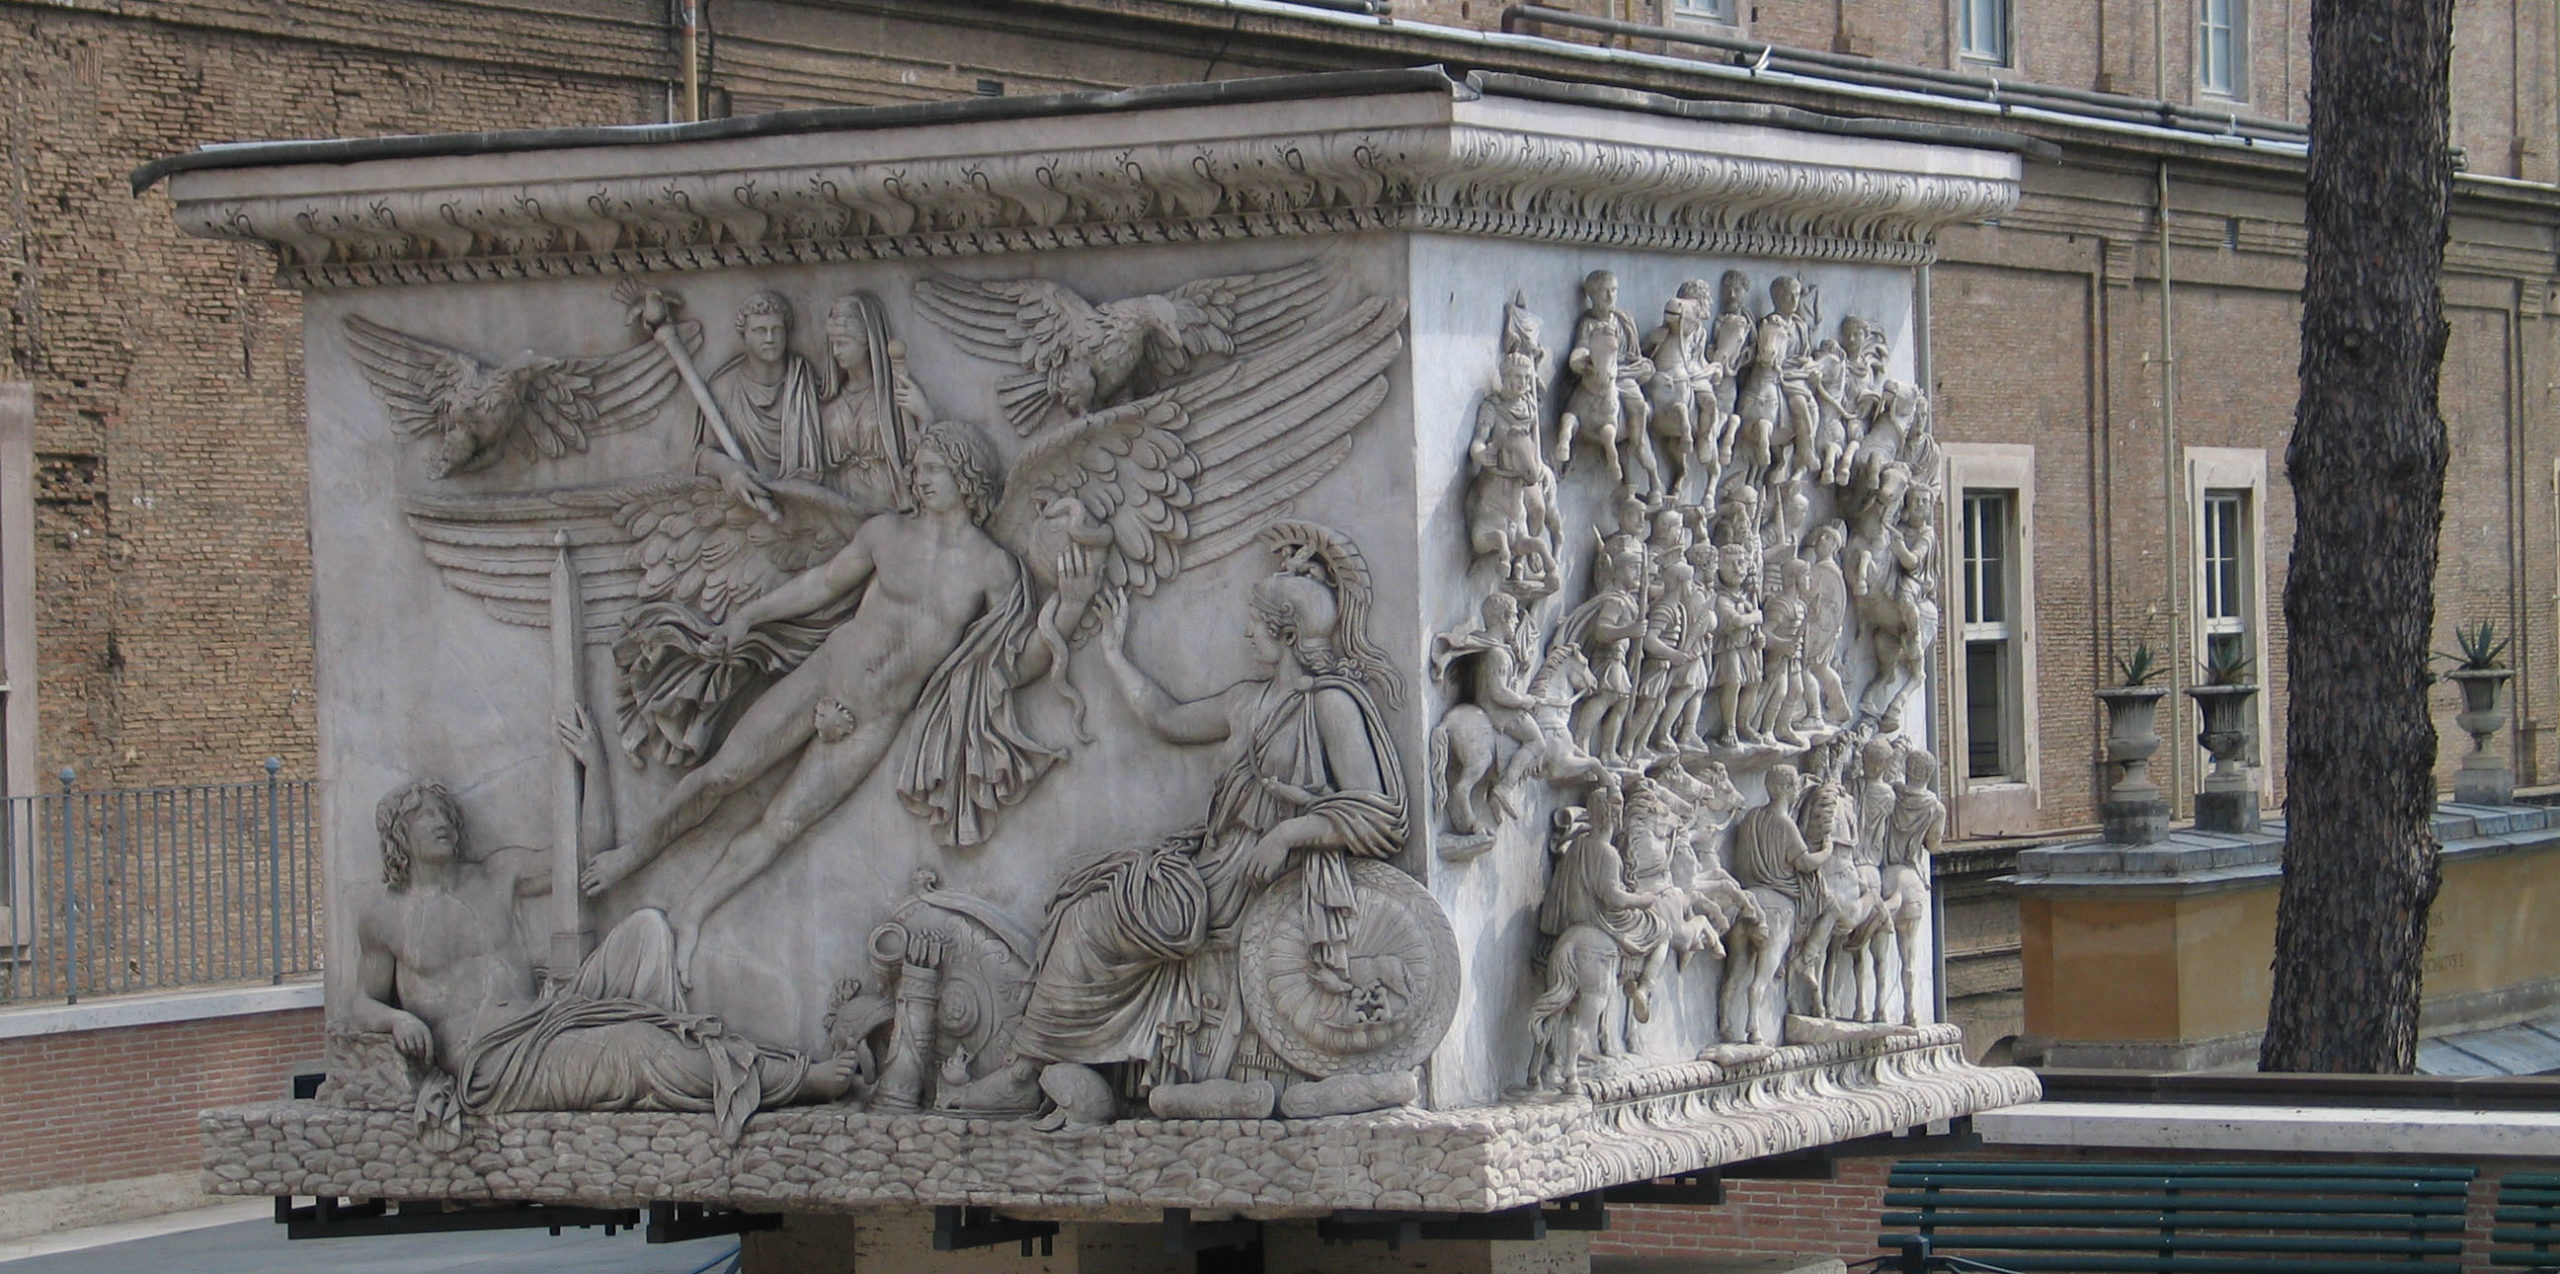 Seminar – Becoming a God; the Deification of the Roman Emperor